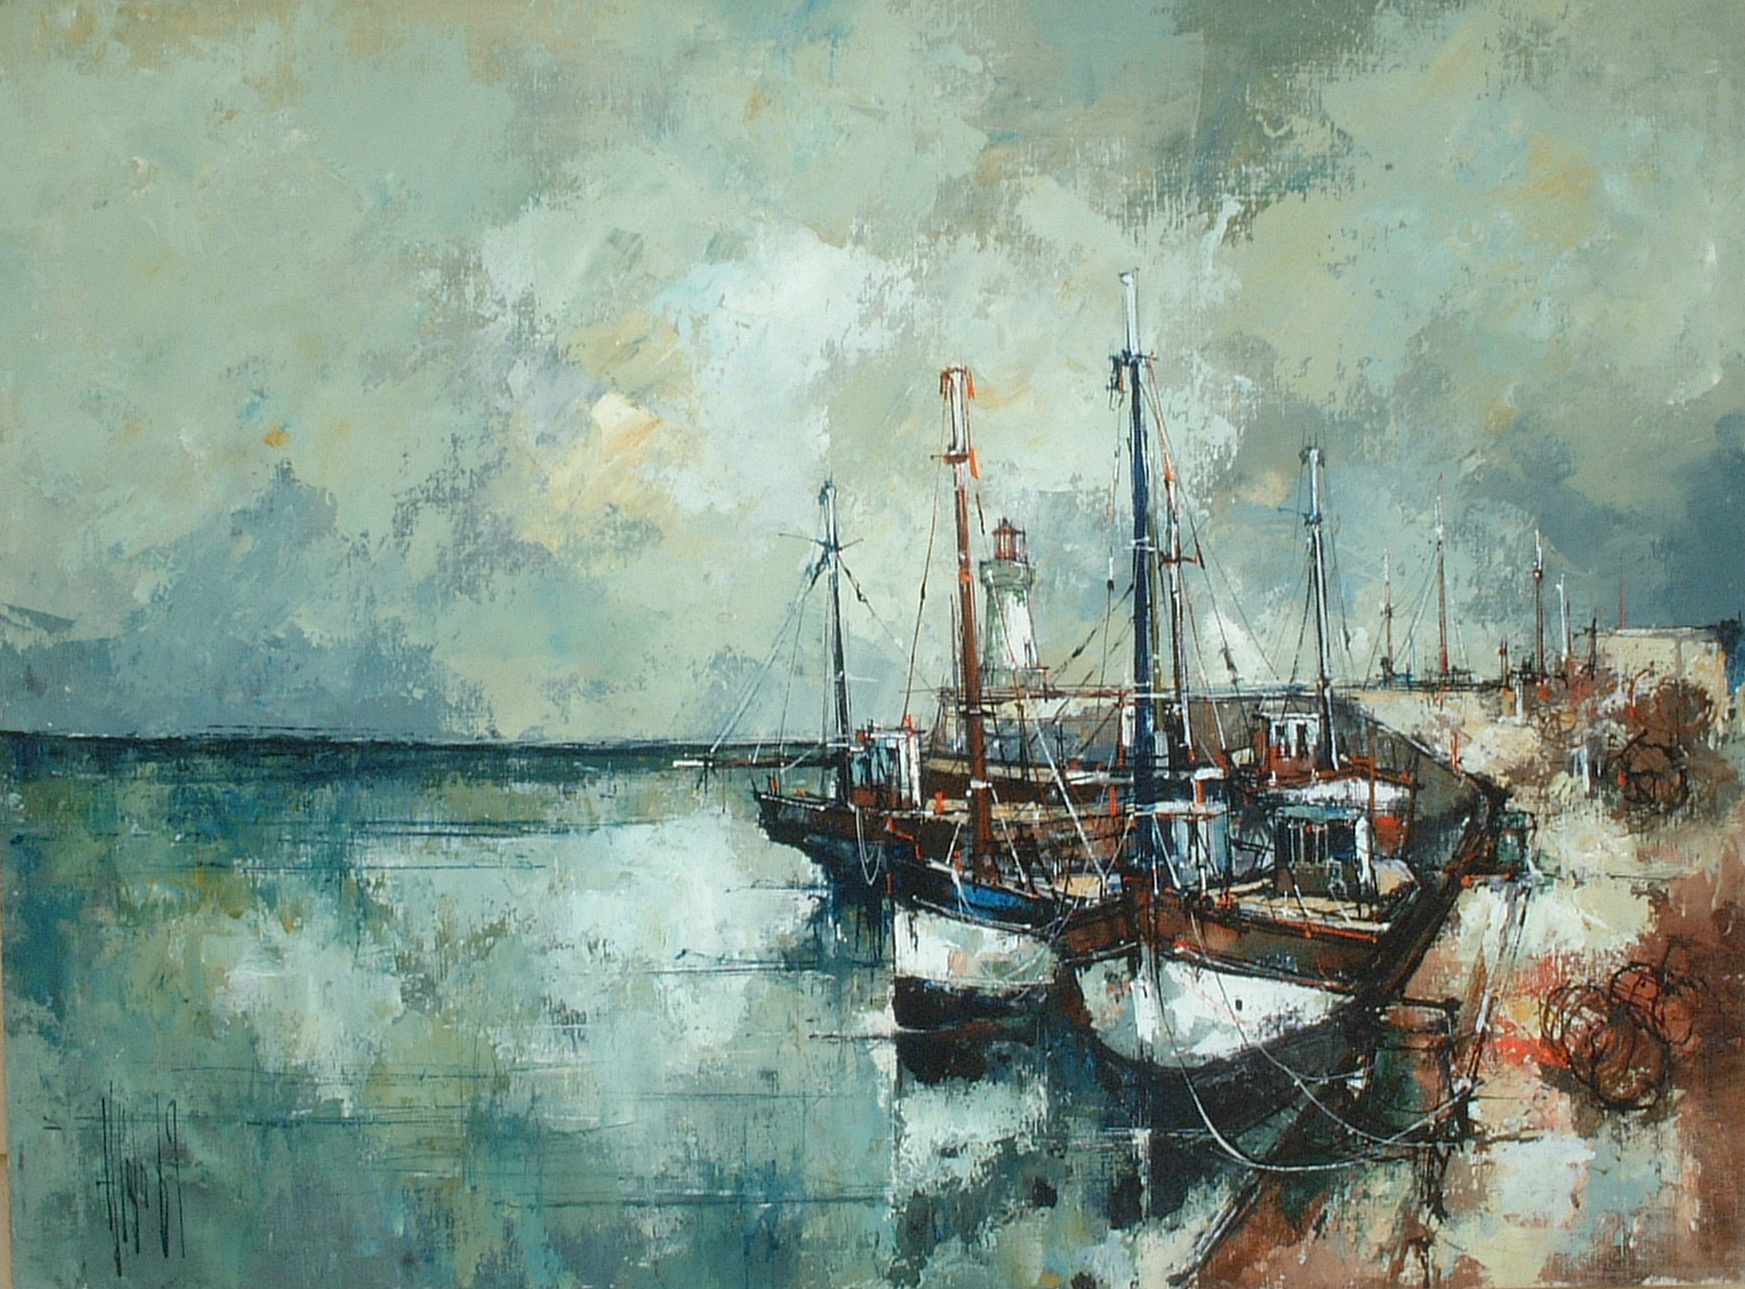 Artist: Aldo Title: Fishing Boats at Rest Size: 23.5in x 31.5in Framed: No Medium: Oil on Canvas